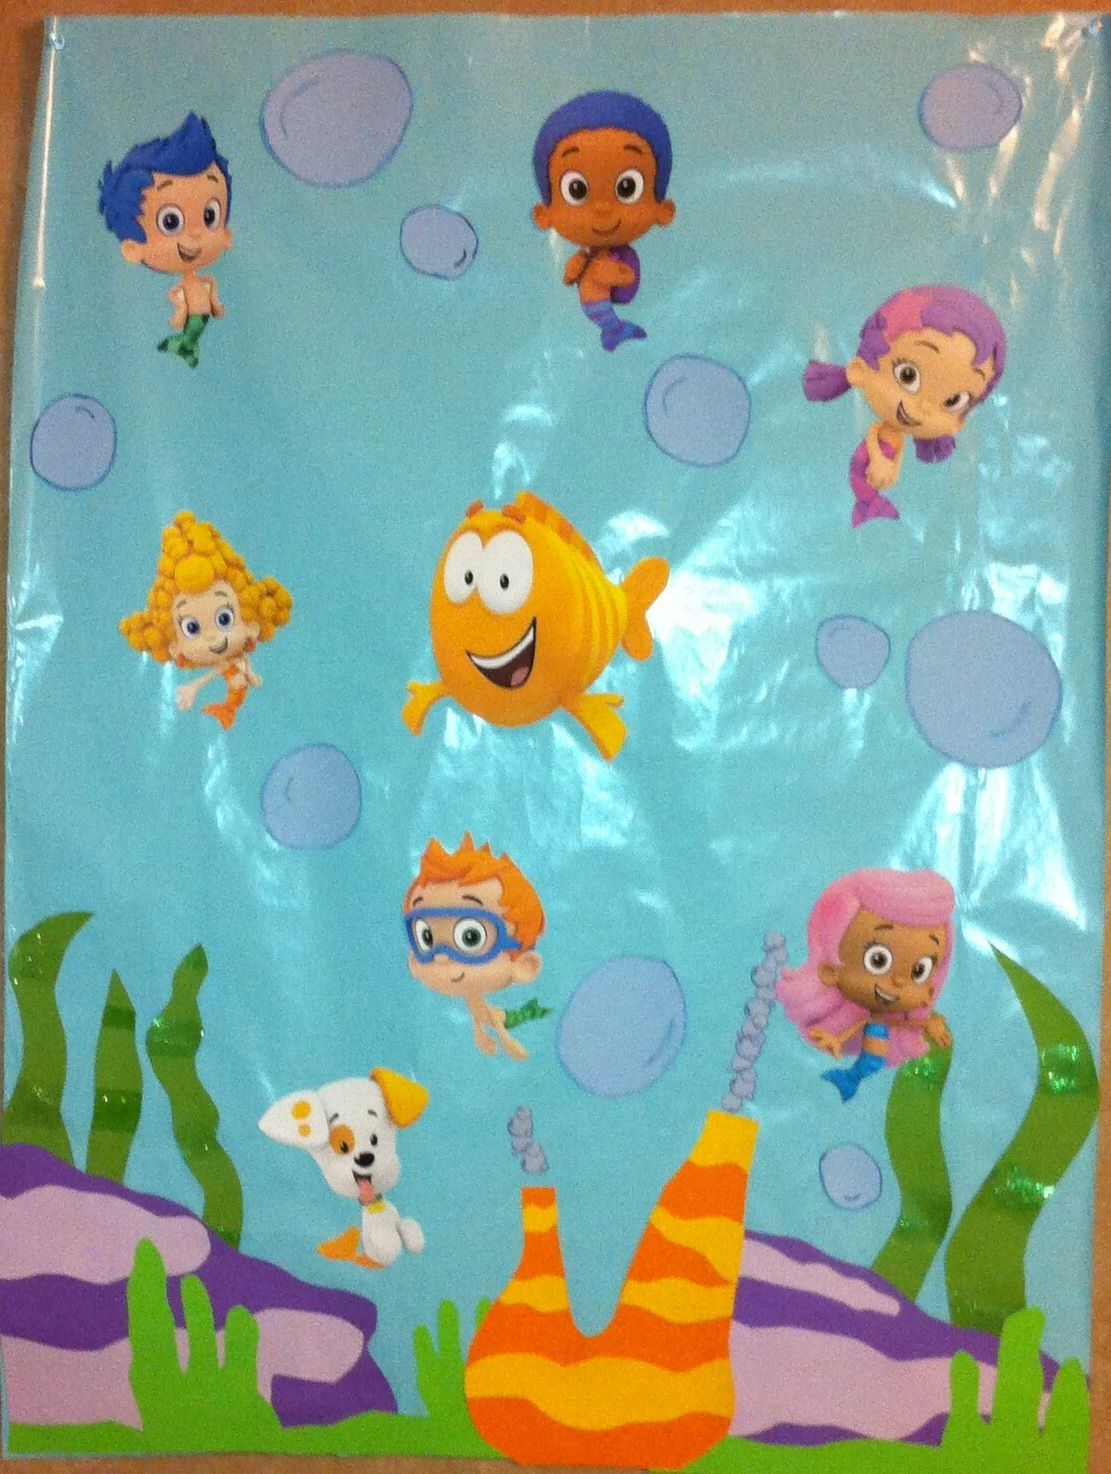 17 Best images about Bubble guppies birthday on Pinterest   Bubble guppies  Bubble  guppies birthday and Birthdays. 17 Best images about Bubble guppies birthday on Pinterest   Bubble